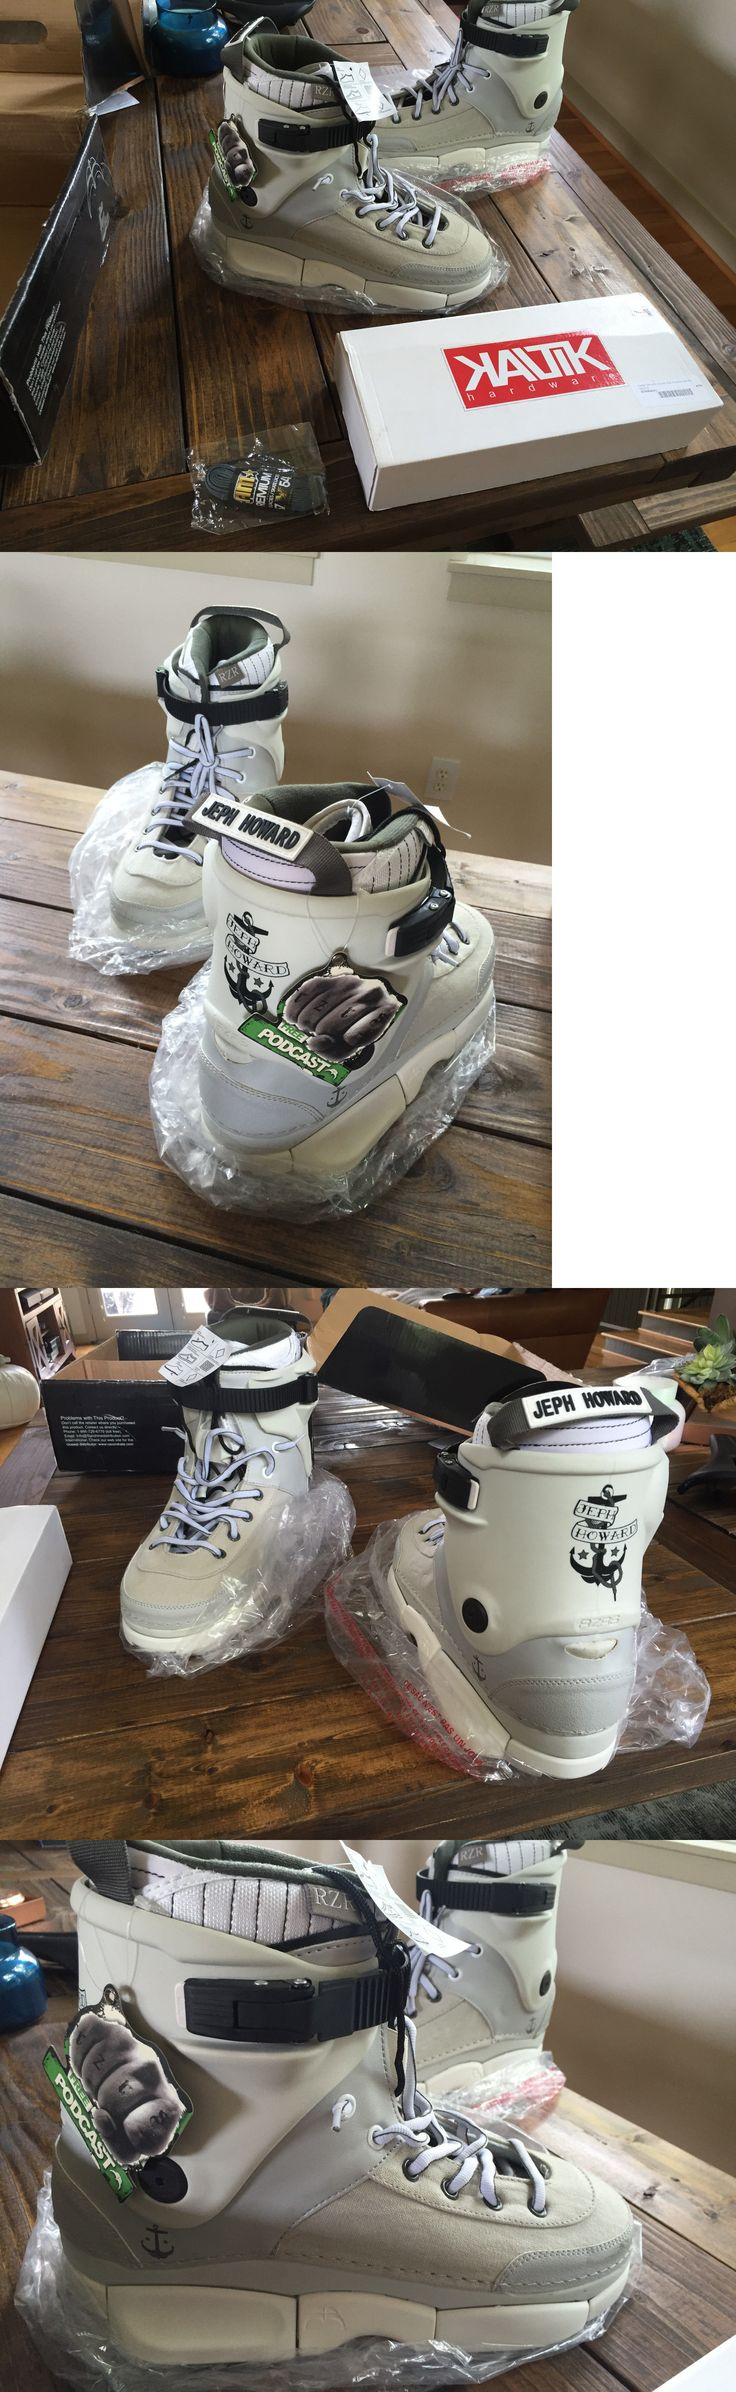 Men 47346: Razors Jeph Howard Pro Sl Size 12 11Uk Mens Aggressive Skates W Kaltik Frame -> BUY IT NOW ONLY: $150 on eBay!